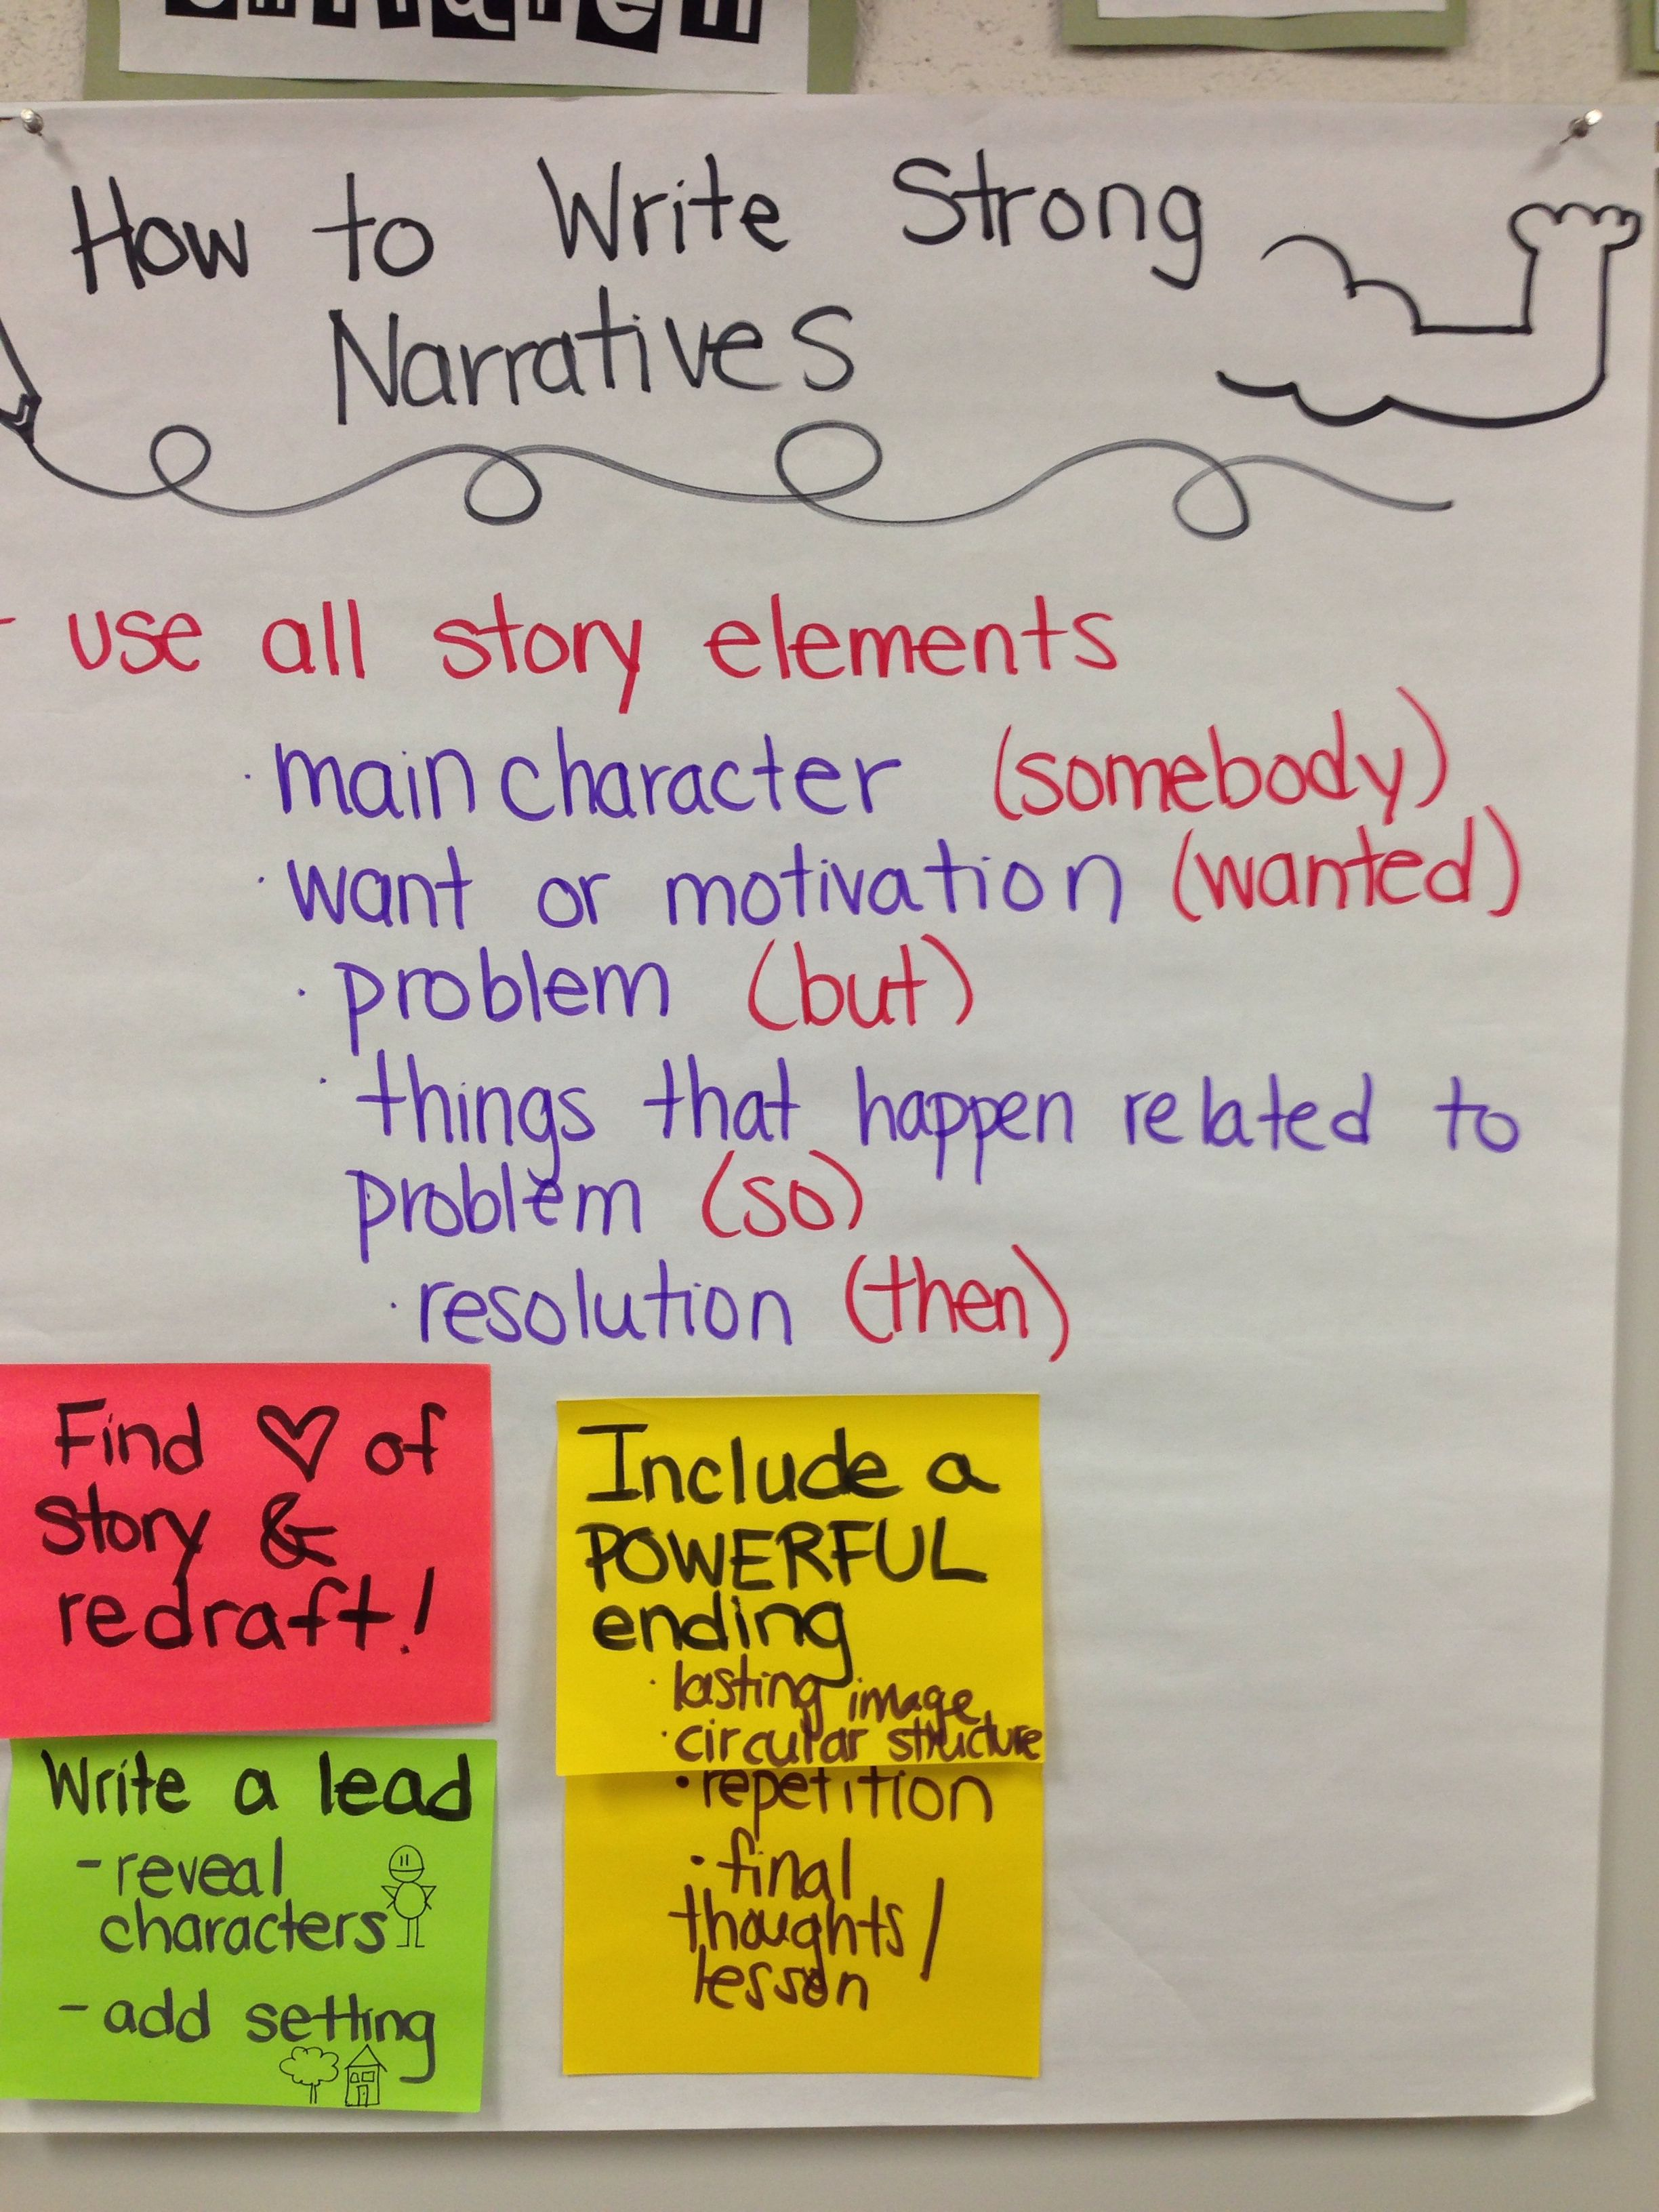 How to write strong narratives including story elements. #tcrwp